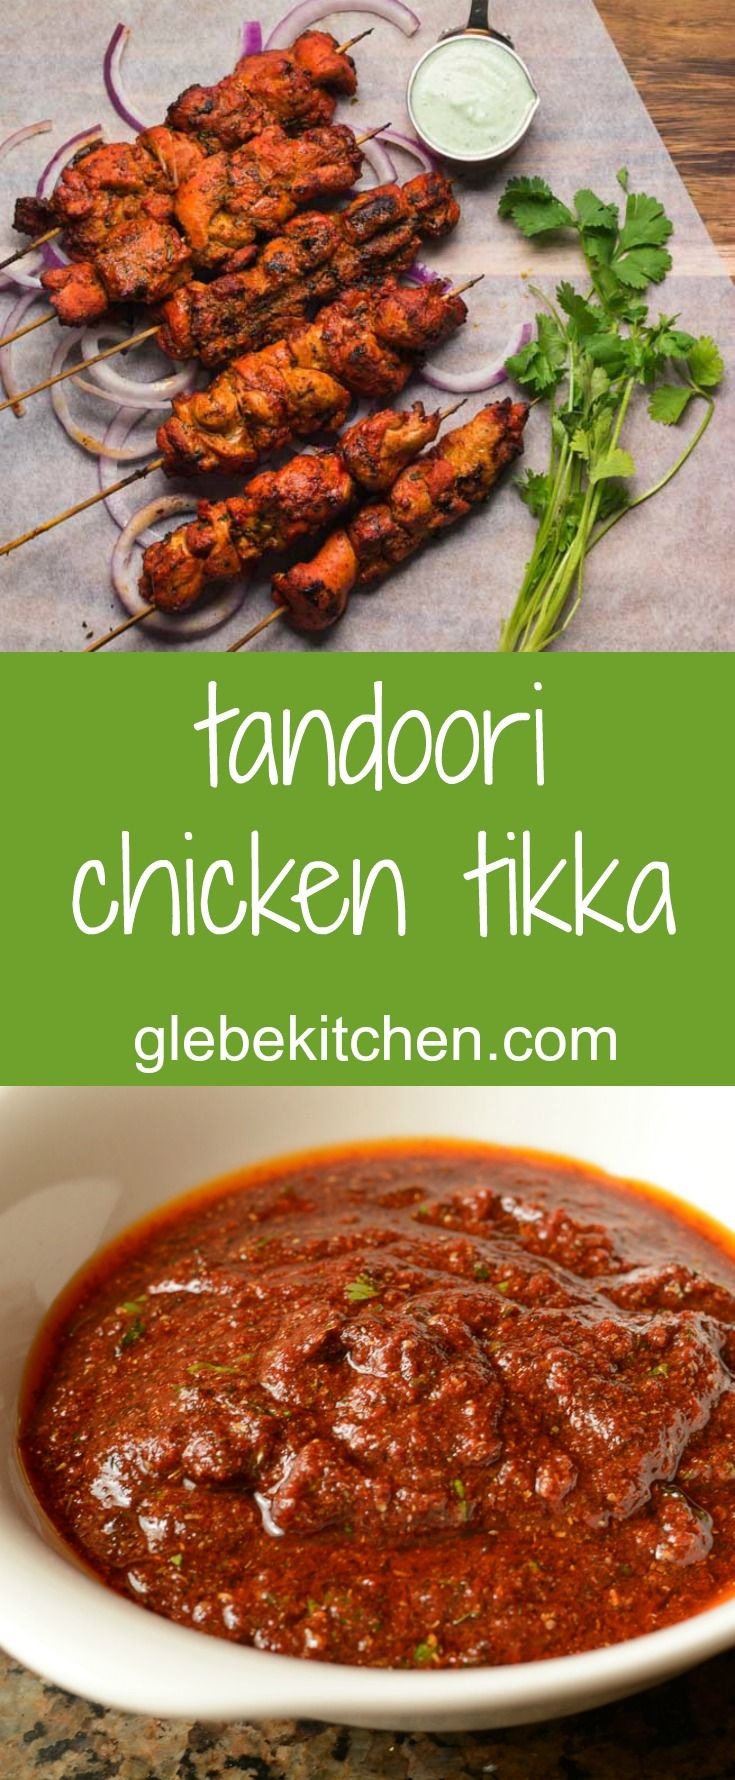 Chicken tikka recipe indian meal chicken tikka and chicken skewers chicken tikka indian mealindian foodsindian recipesindian forumfinder Image collections